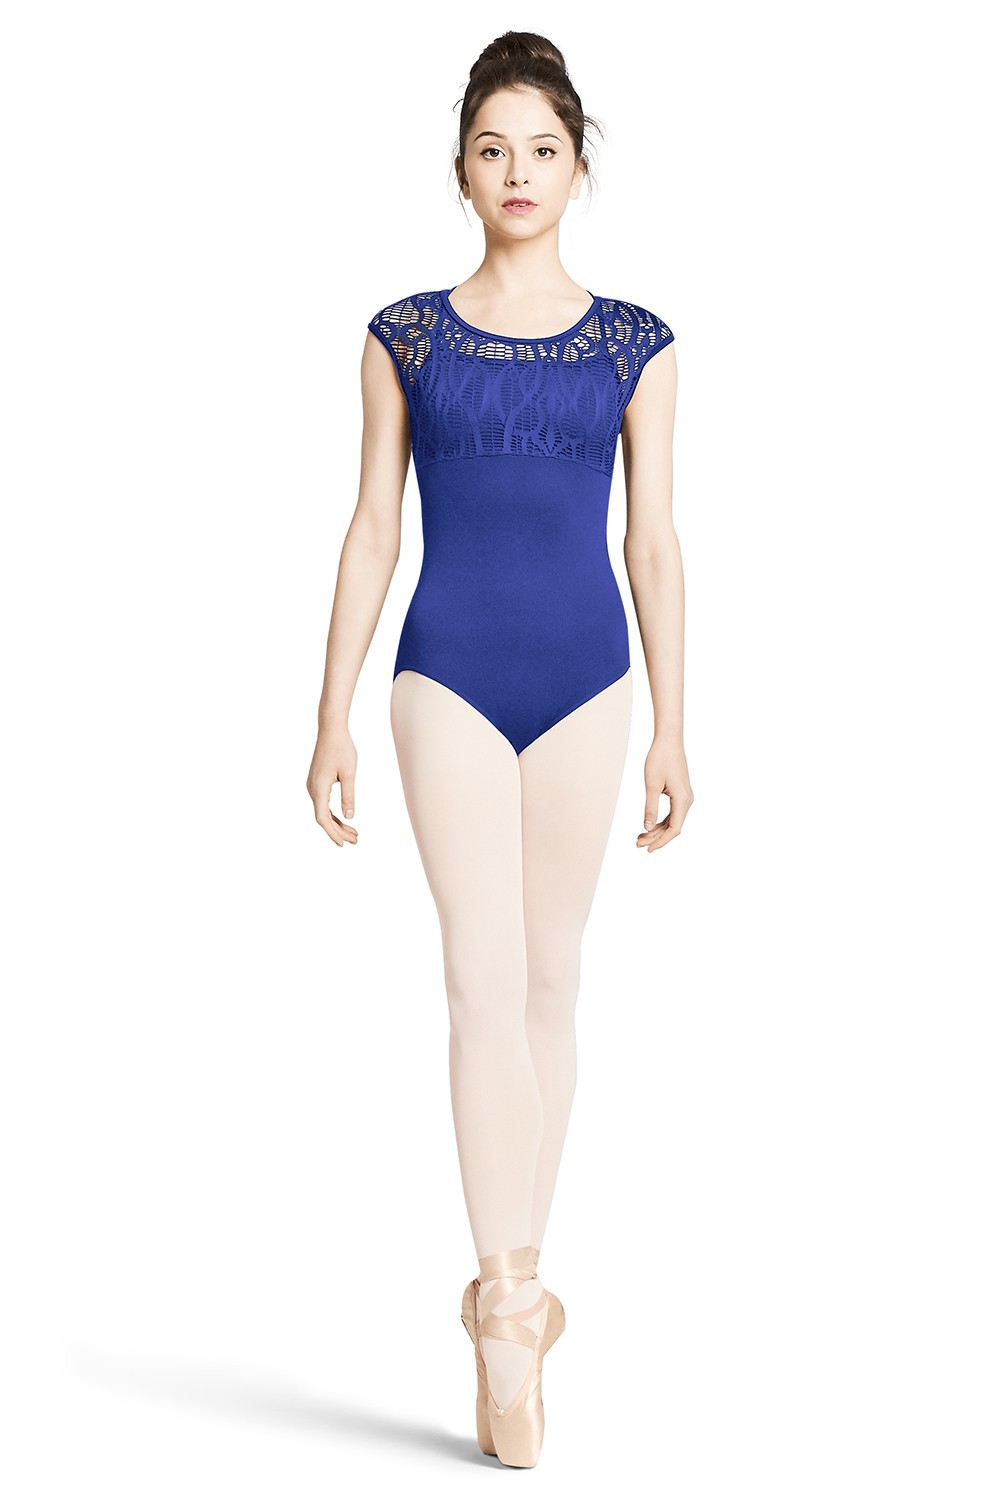 X-back Cap Sleeve Leotard Women's Dance Leotards